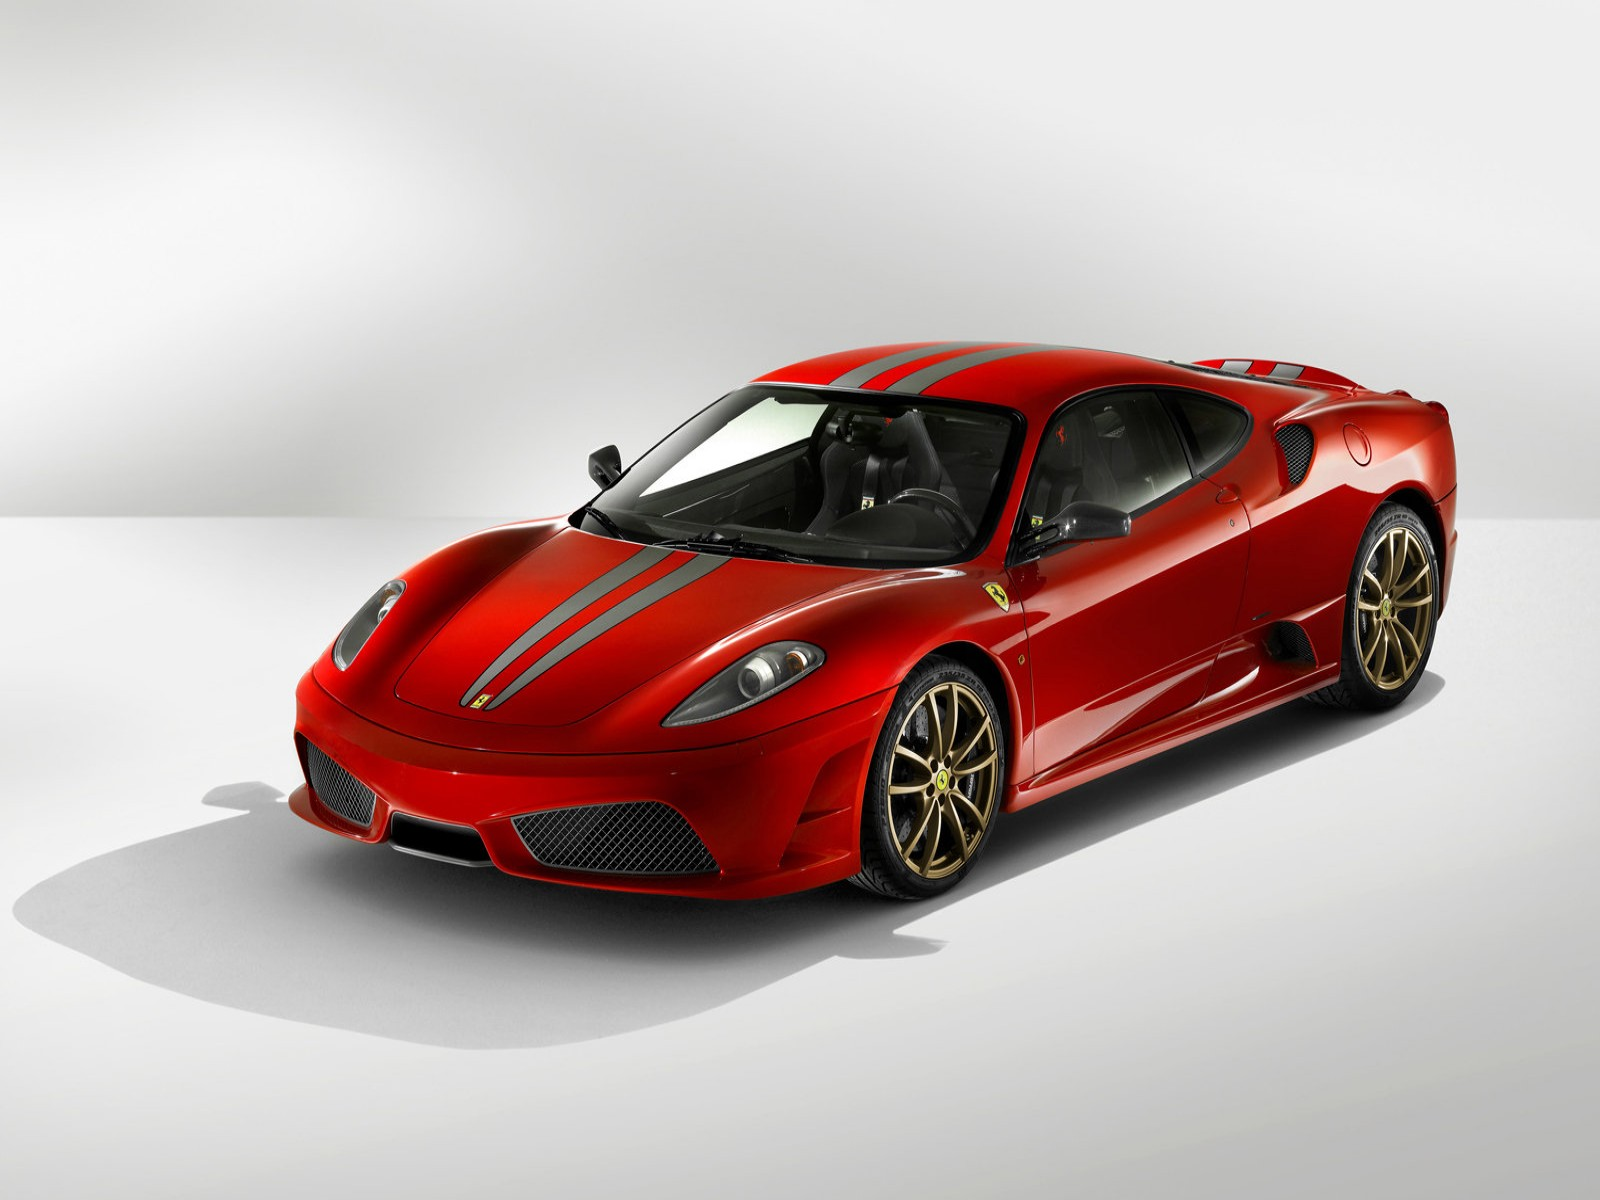 car pictures ferrari 430 scuderia 2008. Black Bedroom Furniture Sets. Home Design Ideas